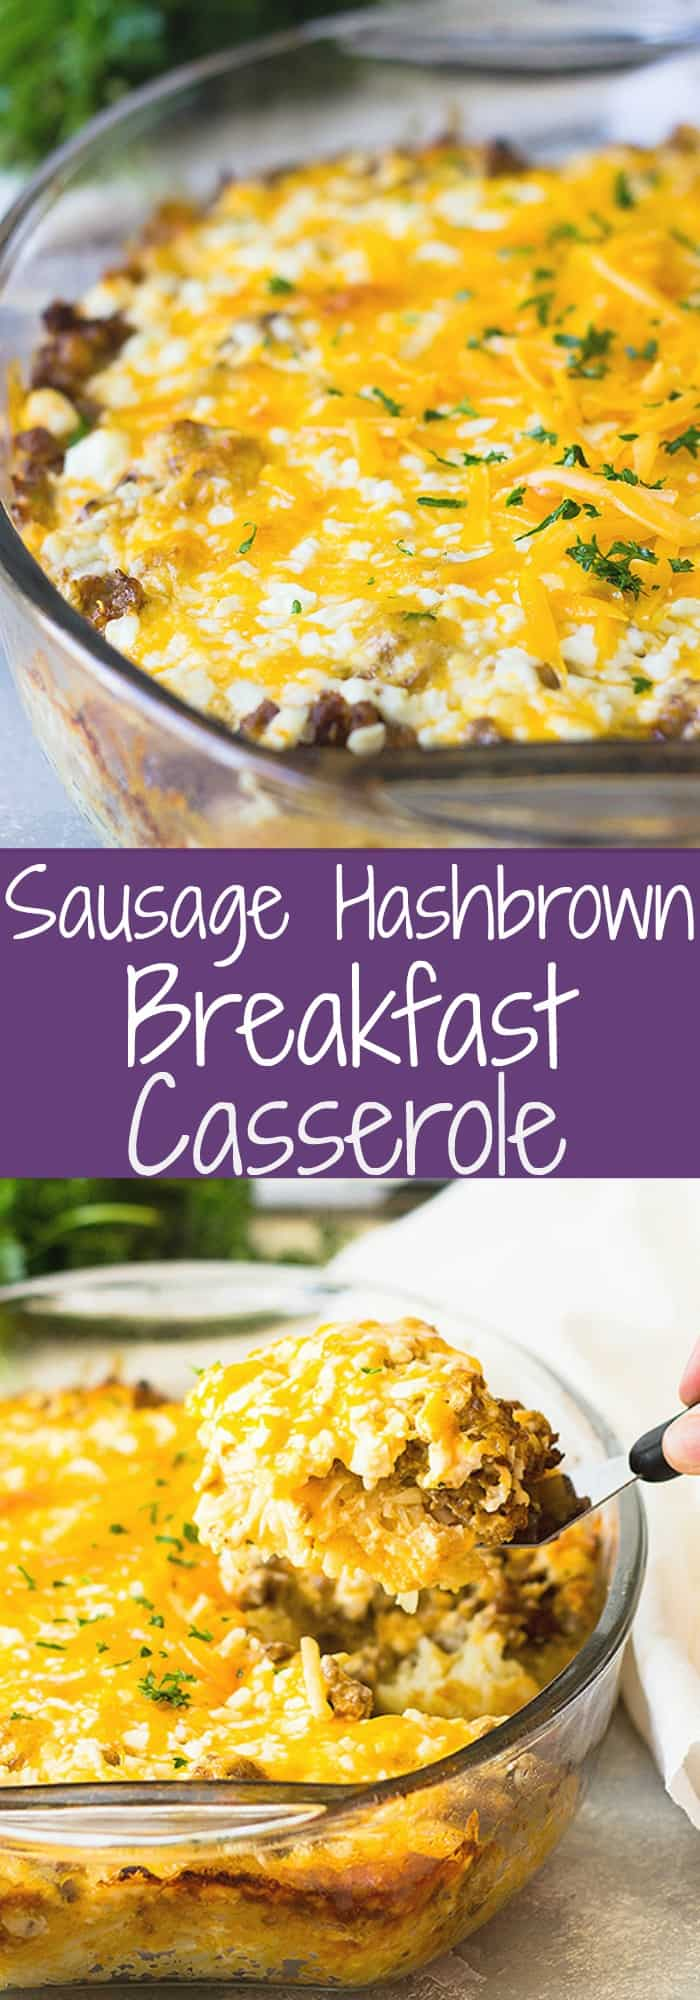 Sausage Hashbrown Breakfast Casserole recipe is super easy to put together. You can even make it the night before and bake it in the morning! | www.countrysidecravings.com